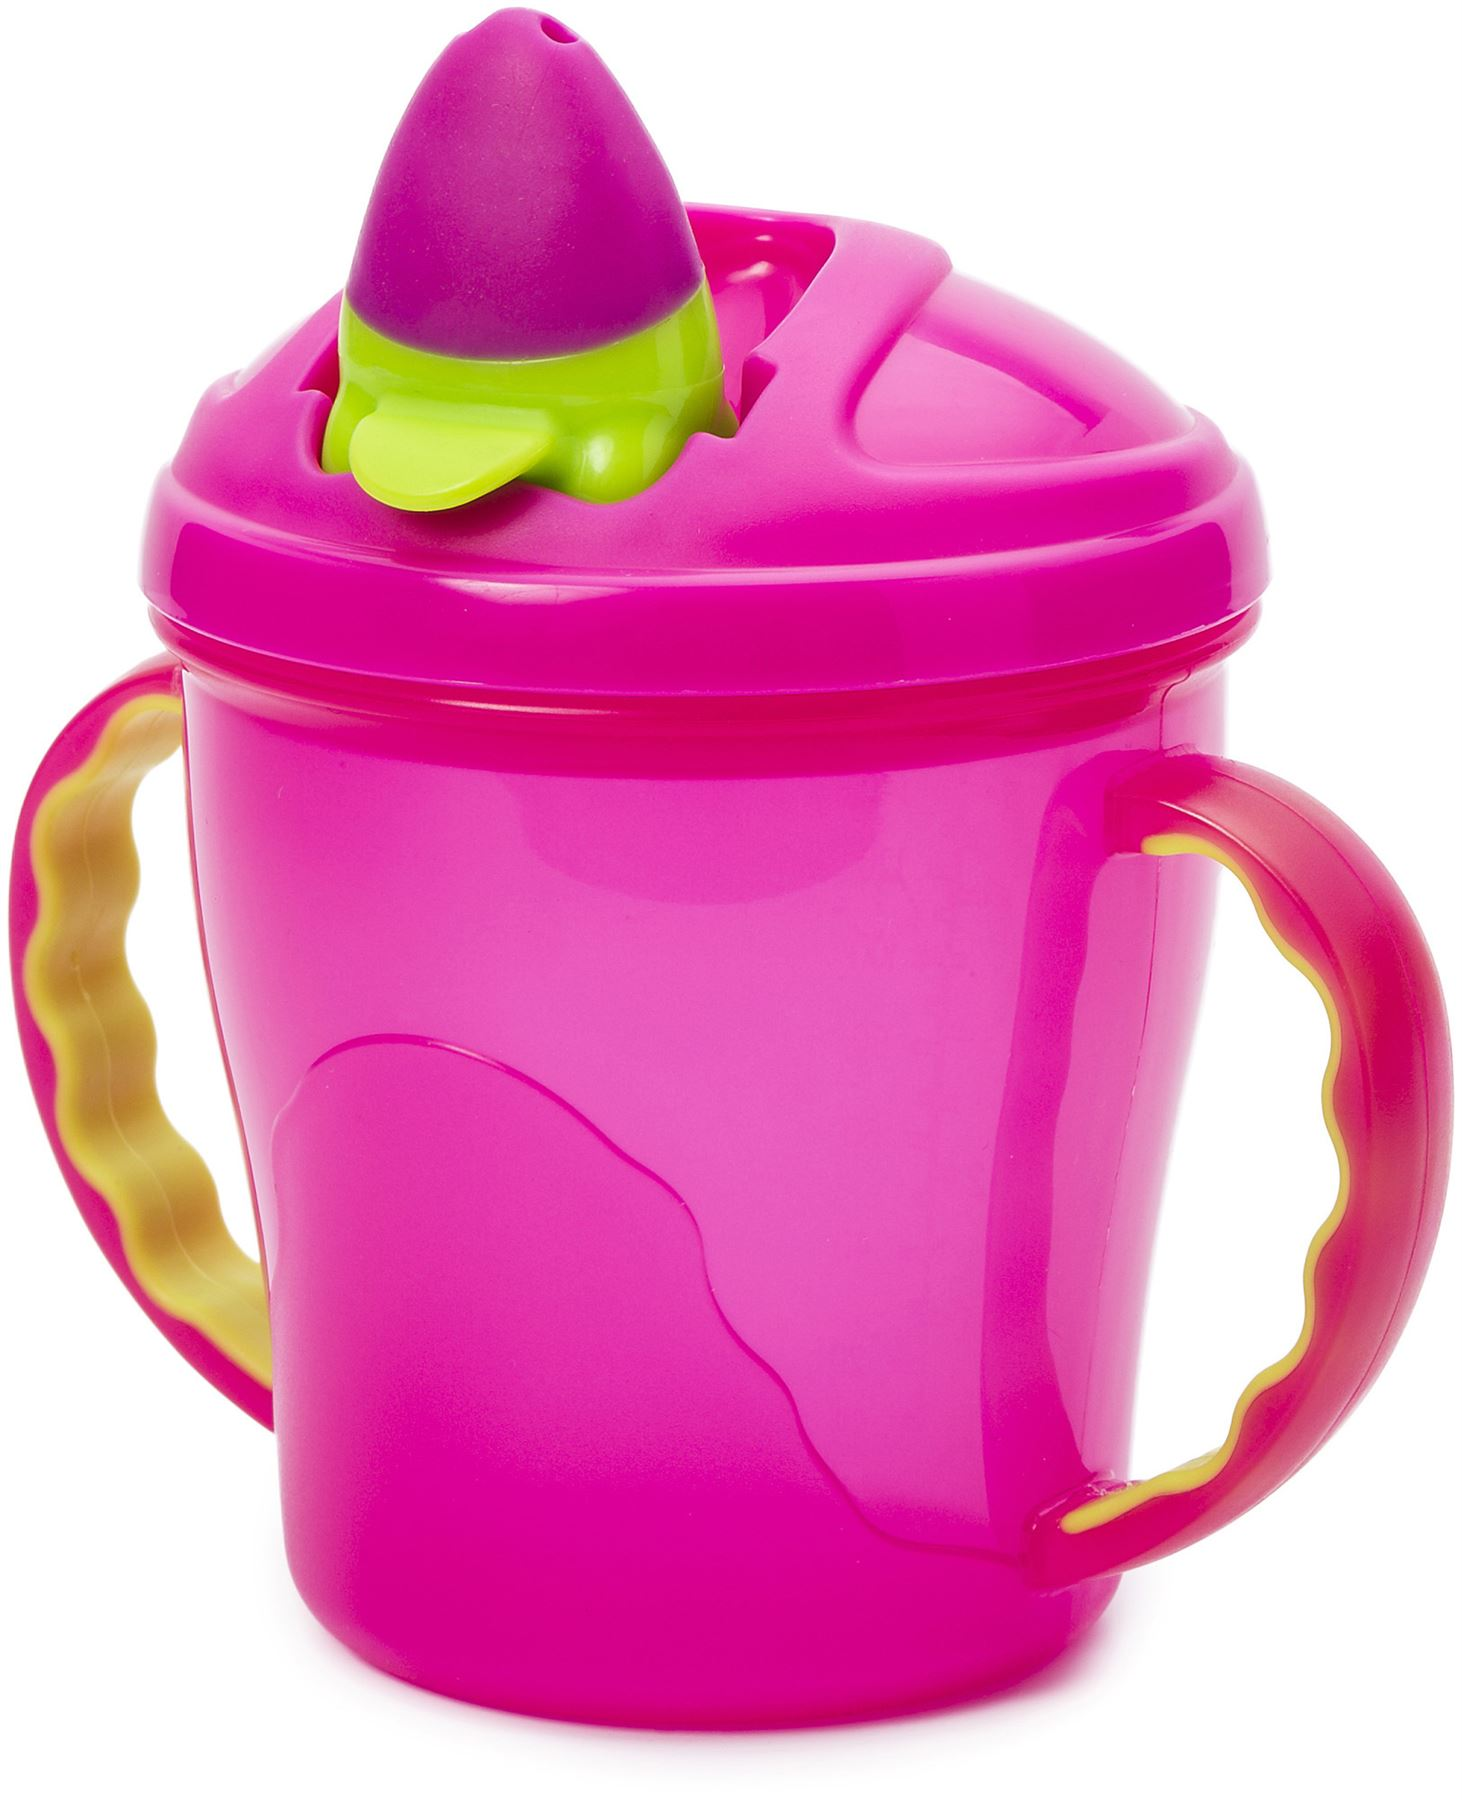 Vital Baby Free Flow Cup With Soft Flip Spout Pink Weaning Cups Bn Baby